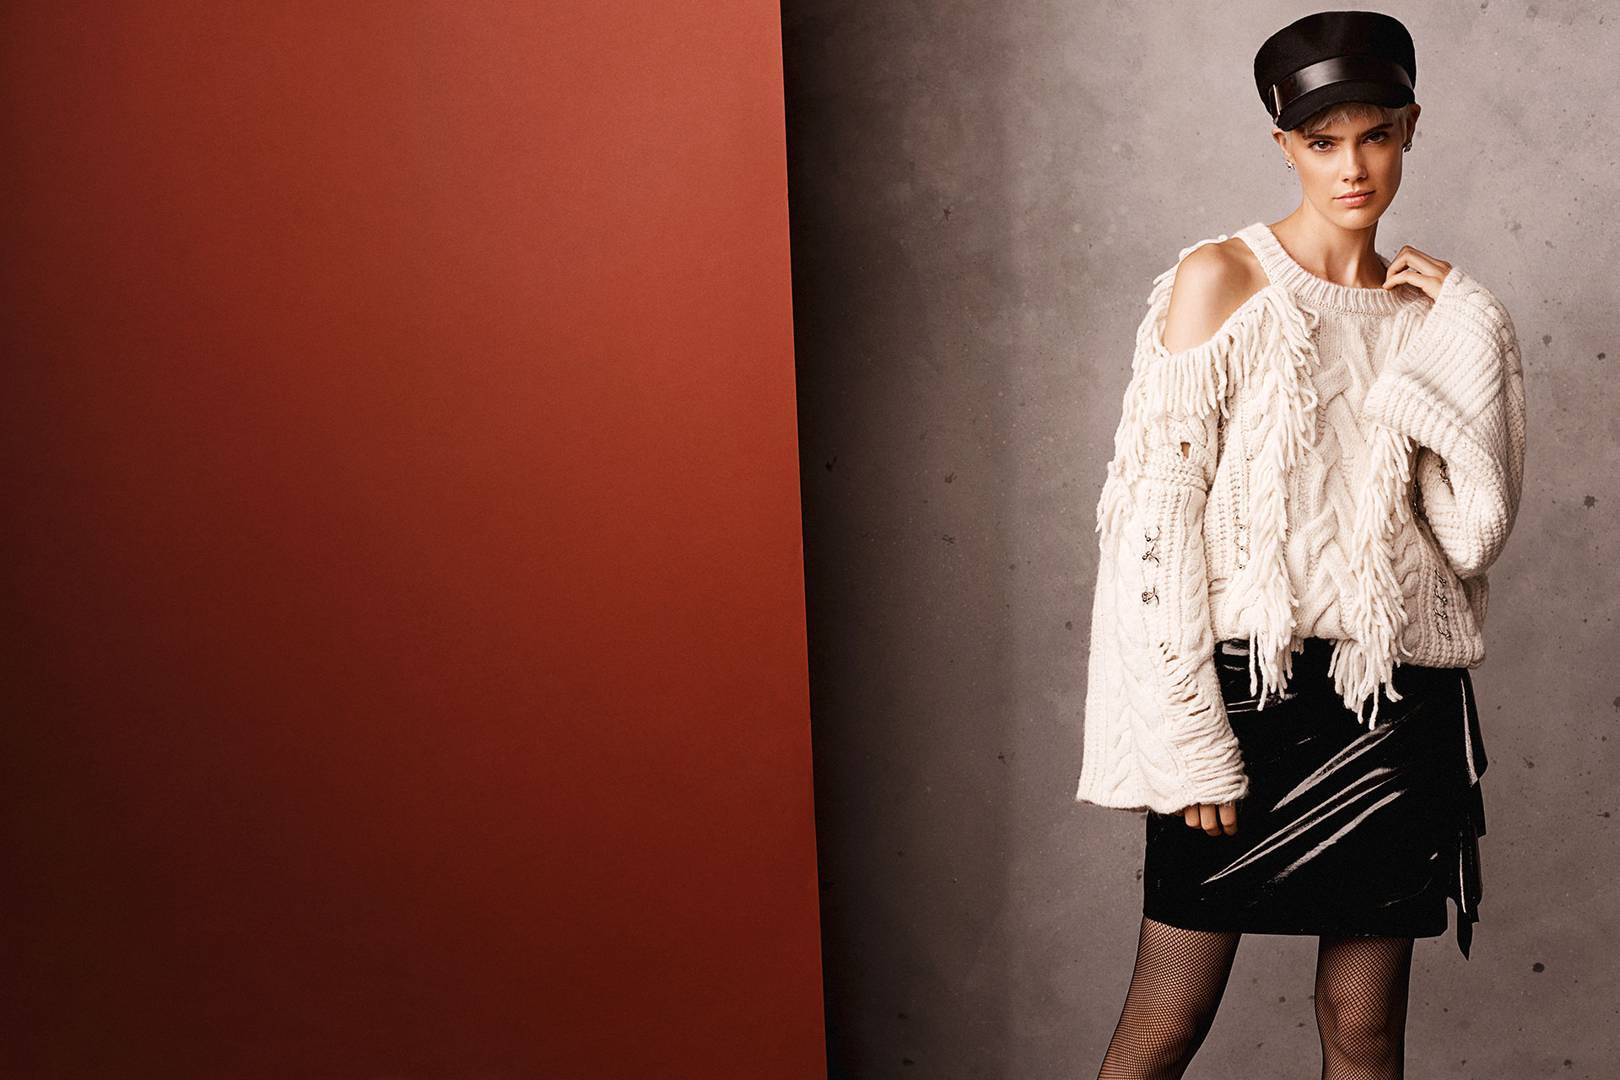 River Island Launches a Studio Fashion Line for Spring 2019 River Island Launches a Studio Fashion Line for Spring 2019 new picture